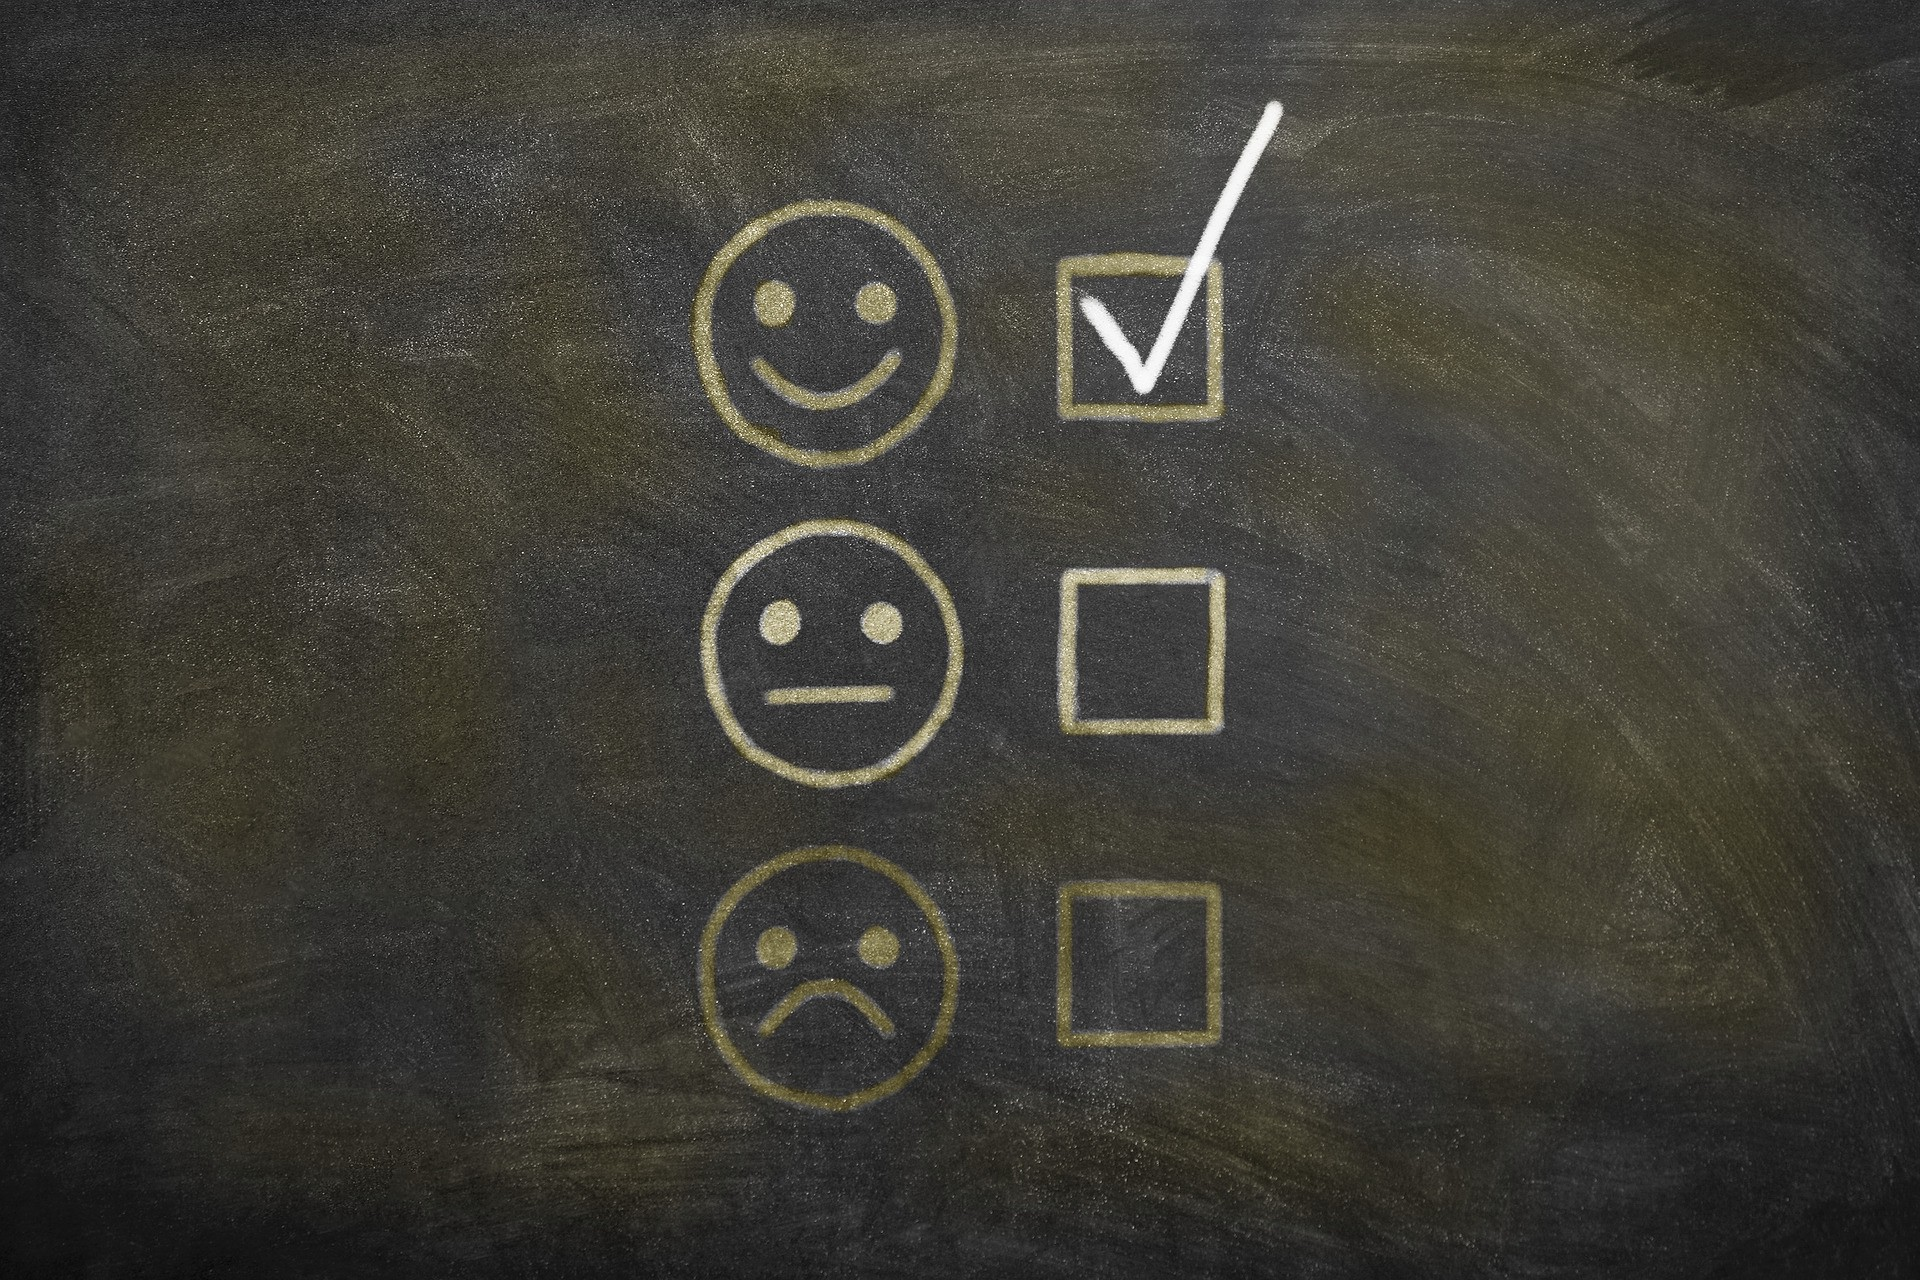 Using Aspect-Based Sentiment Analysis to Understand User-Generated